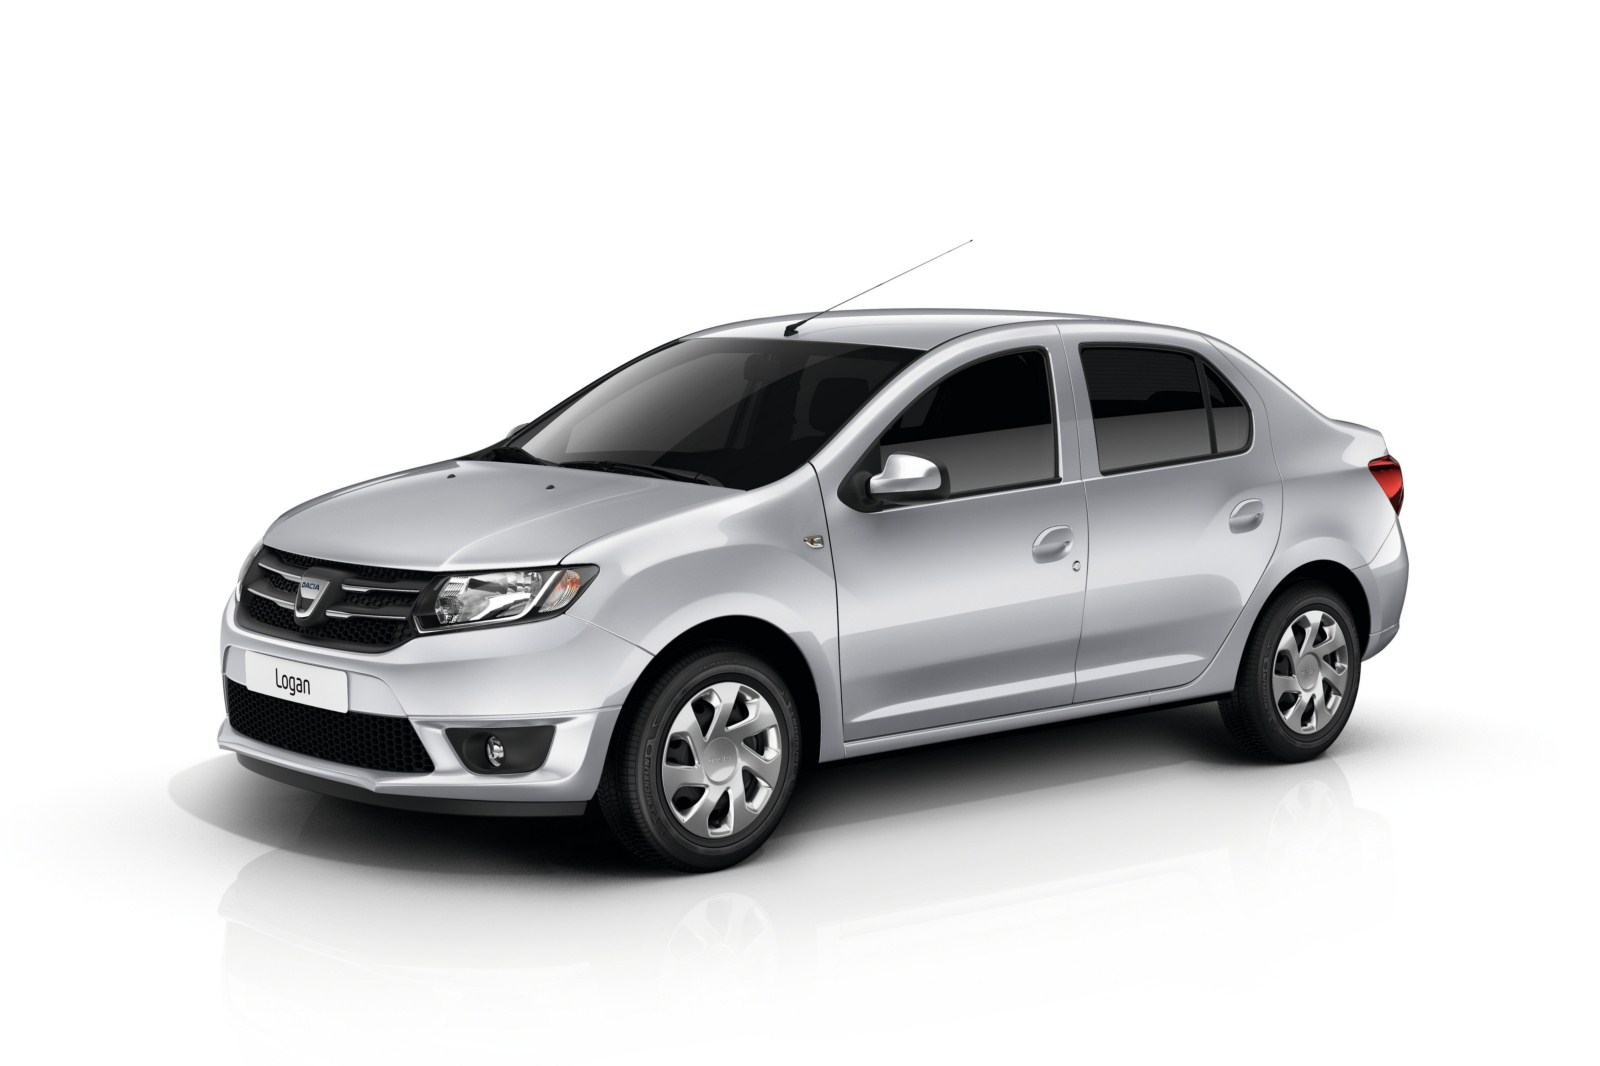 official 2013 2014 new dacia logan and dacia sandero garage car. Black Bedroom Furniture Sets. Home Design Ideas